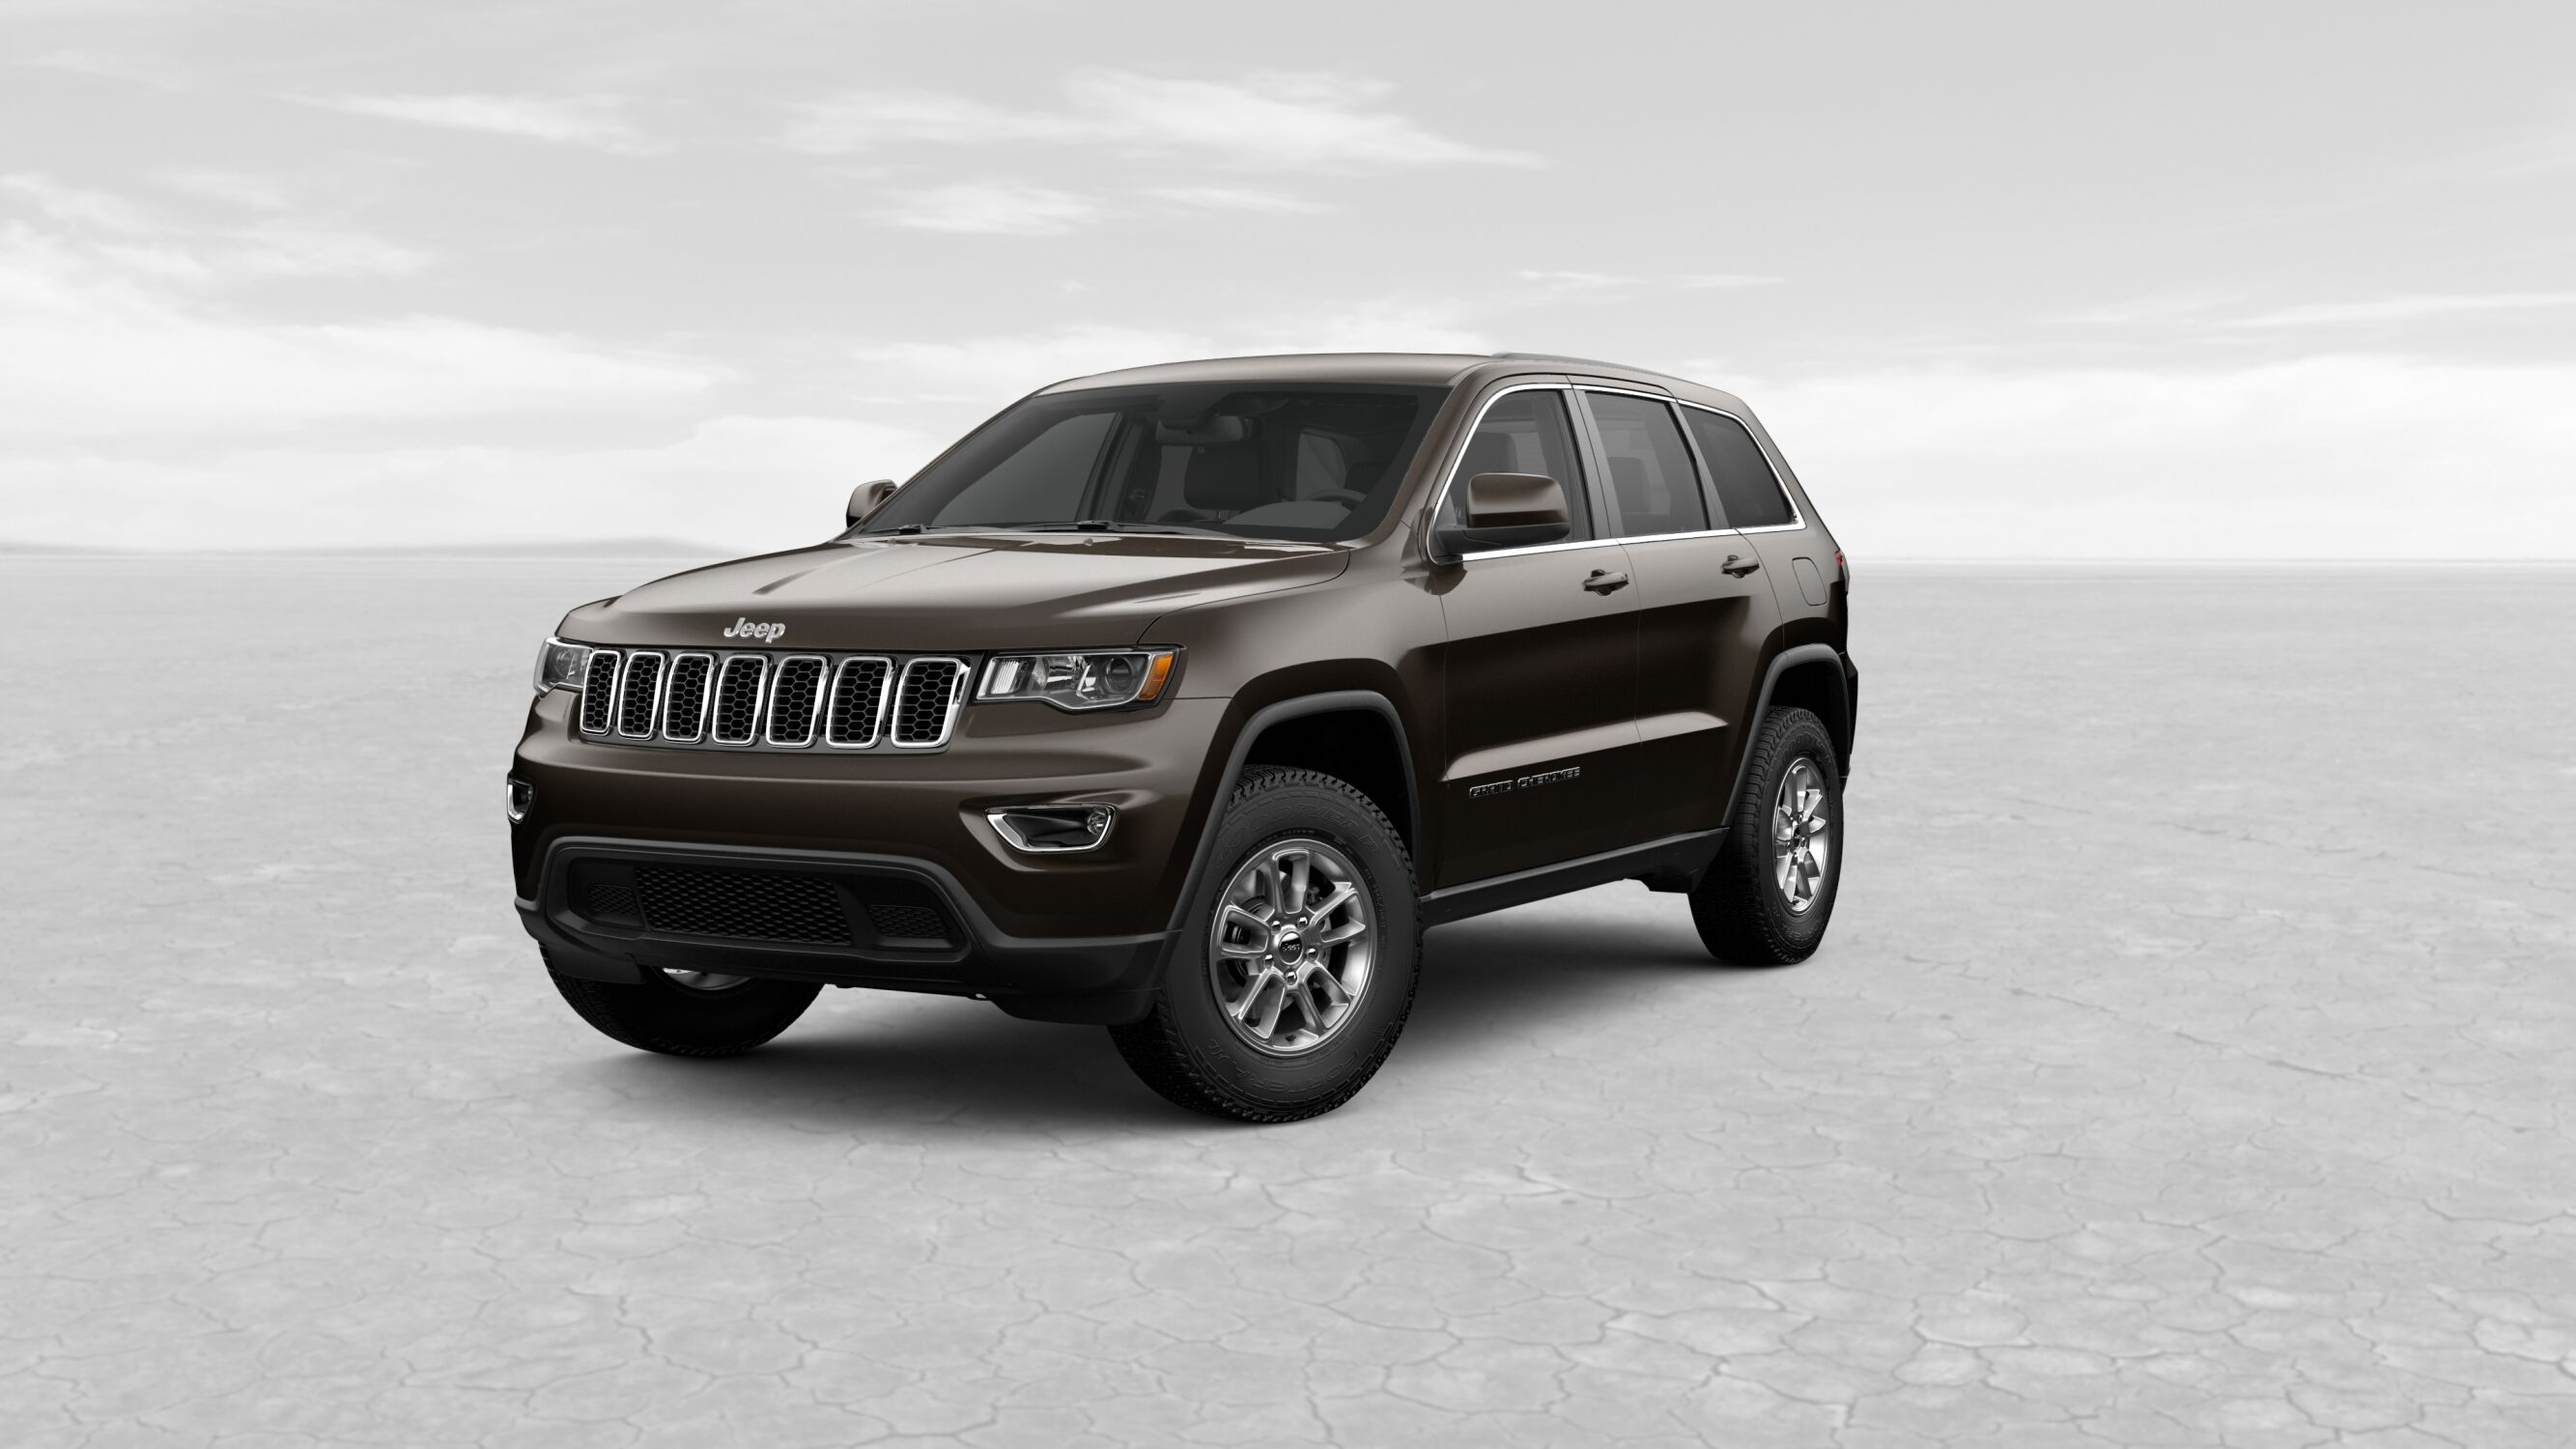 2019 Jeep Grand Cherokee Laredo Brown Exterior Front View